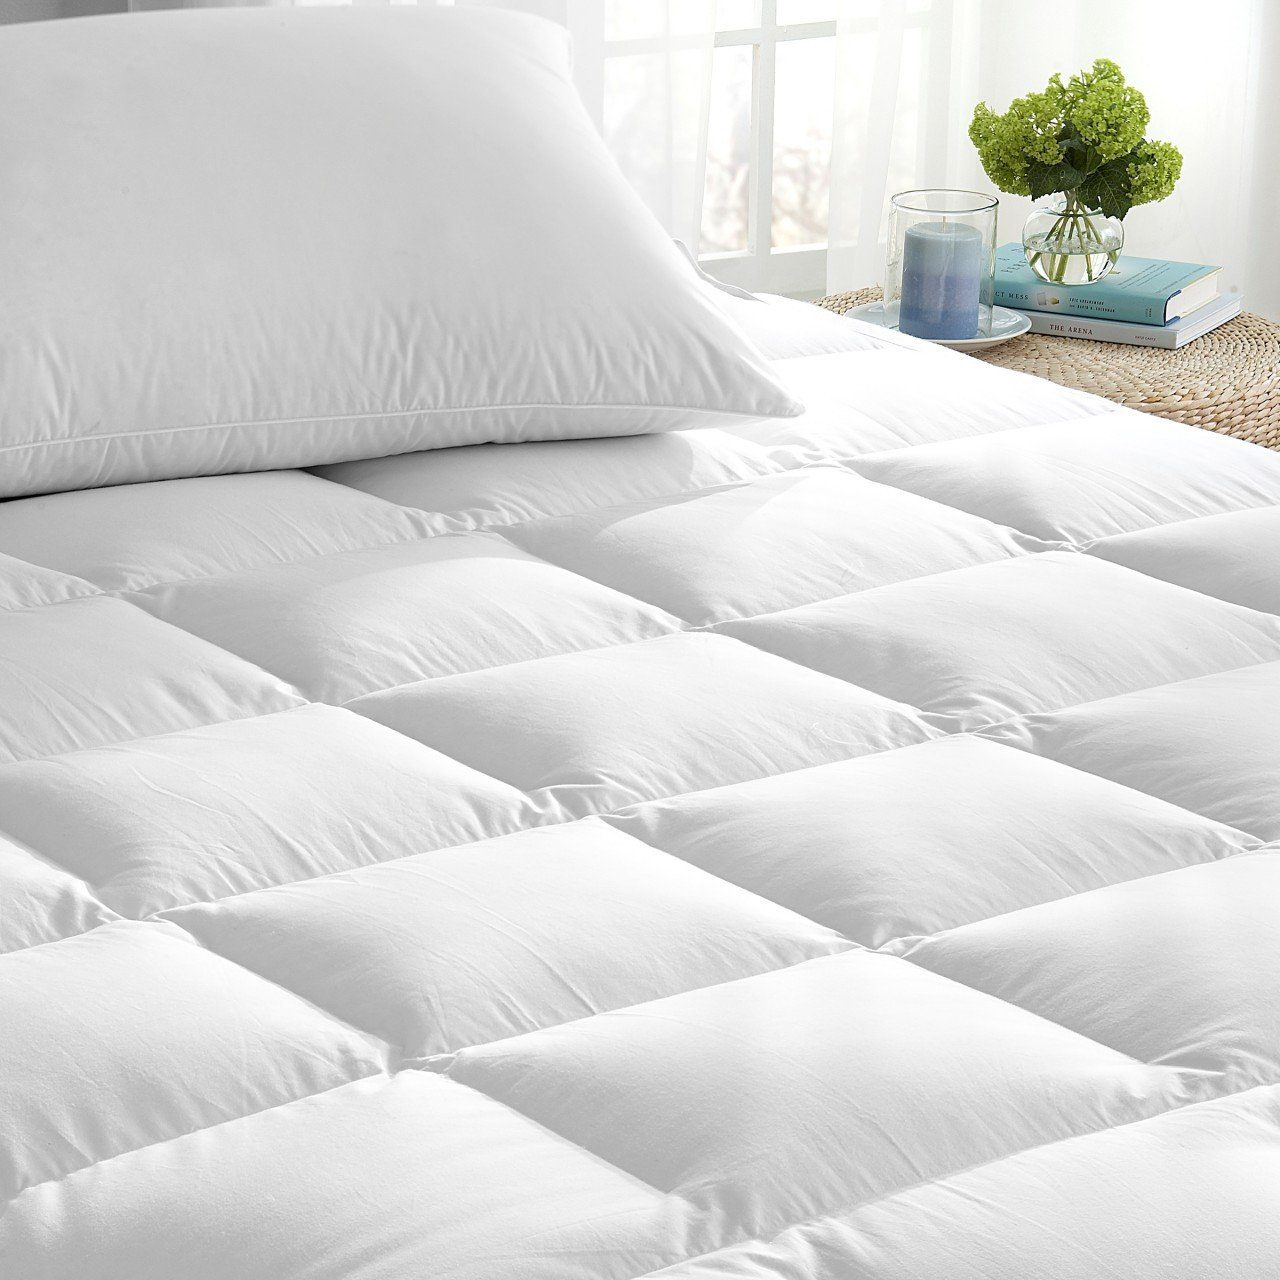 White Goose Down Mattress Pad by Downright